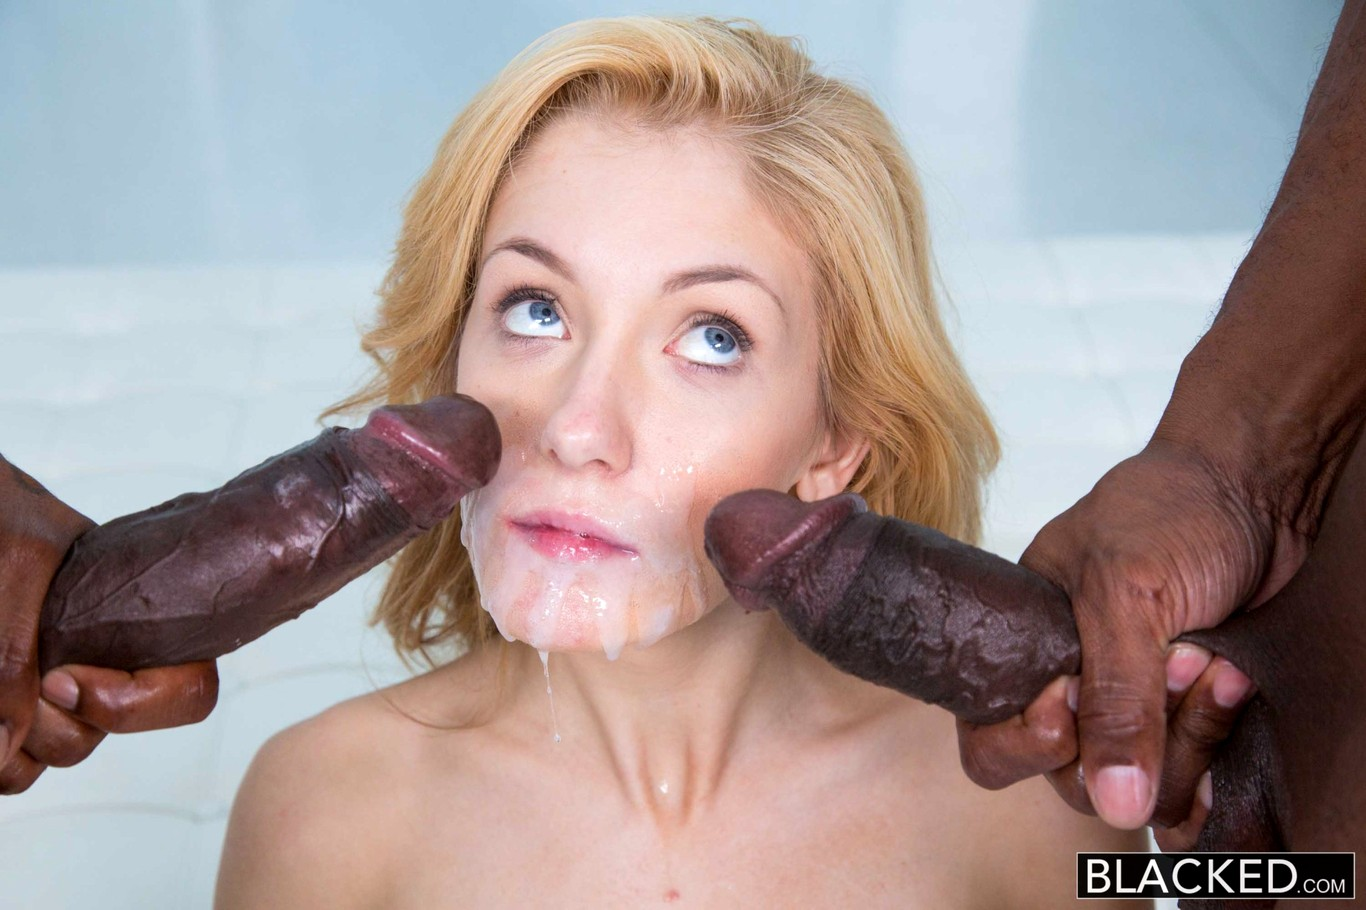 Shocking interracial porn galleries, hot lesbo chicks blonde pornhub